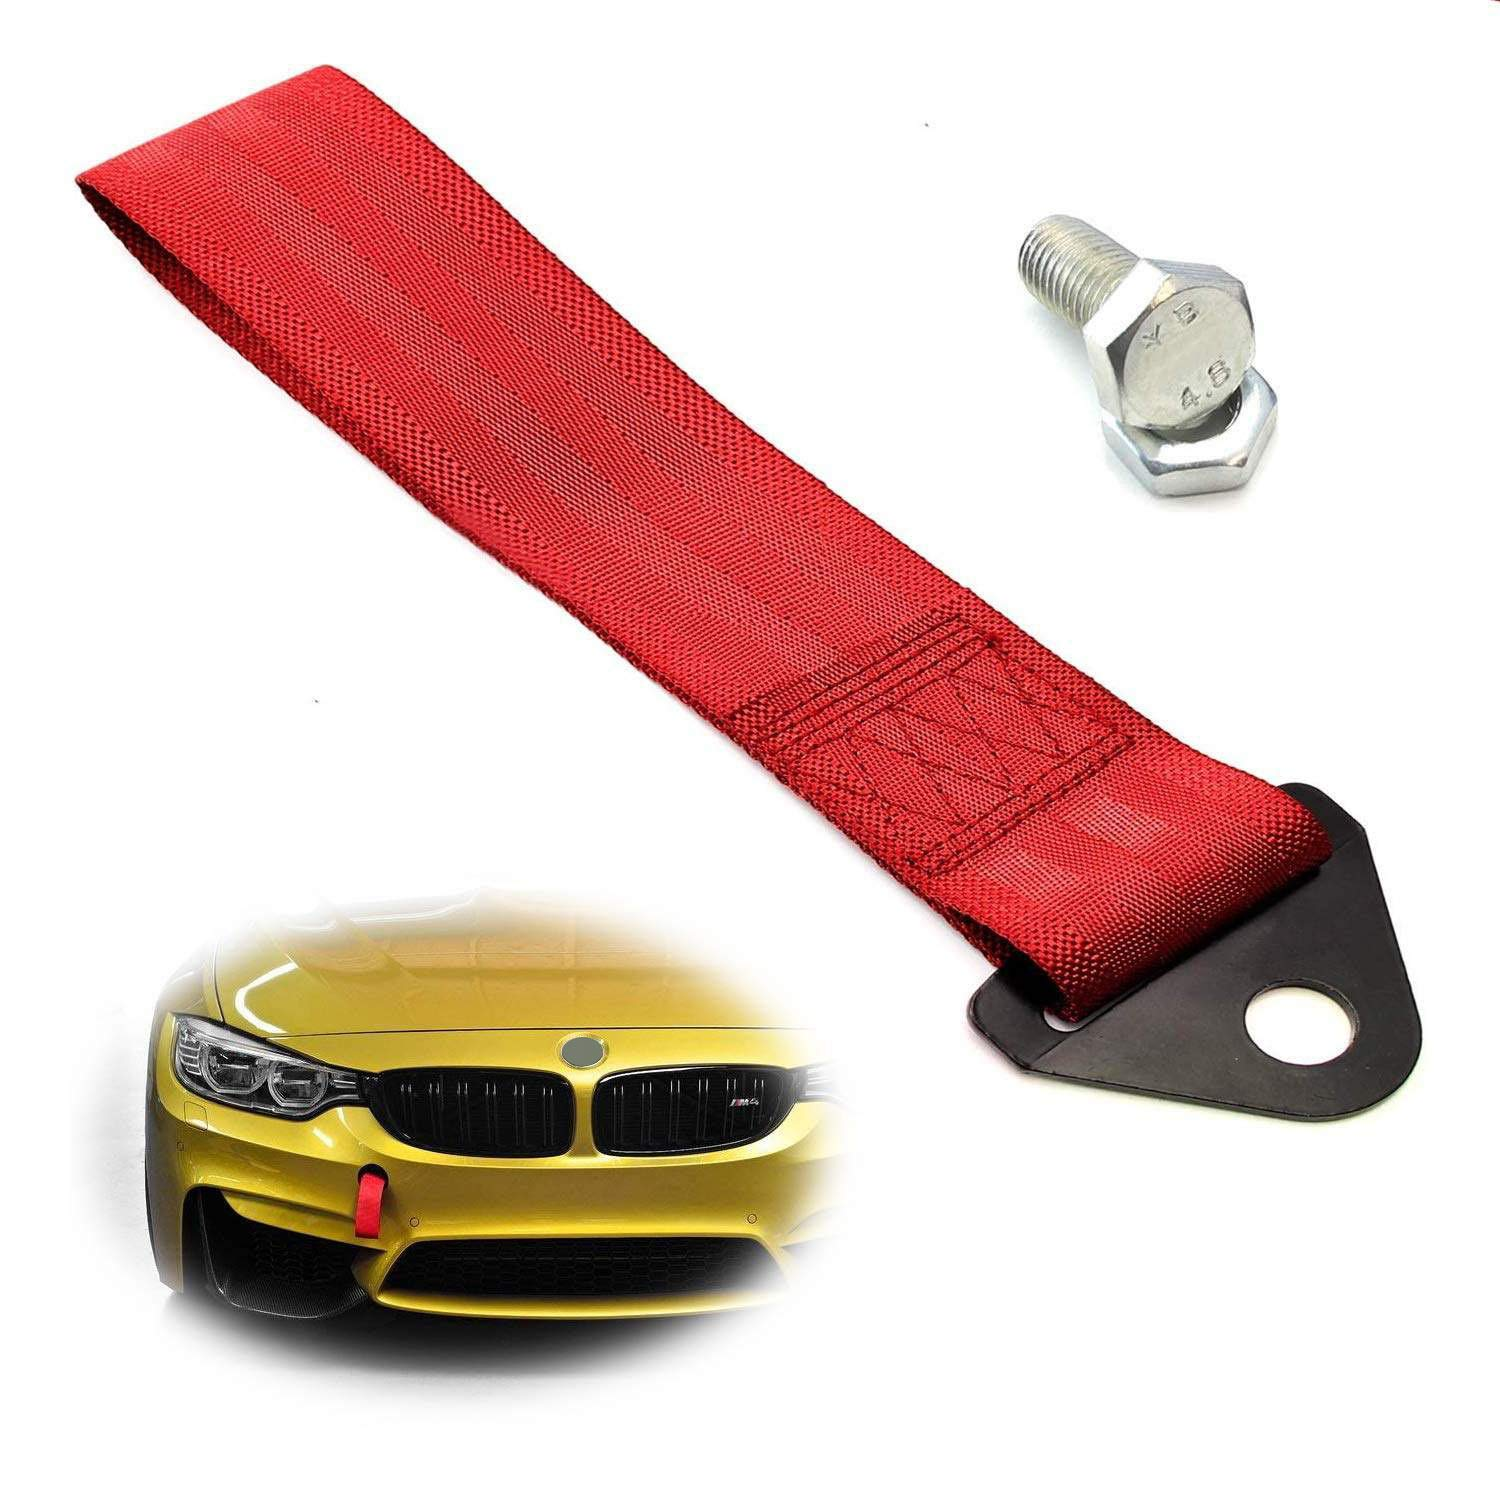 Made of Lightweight Aluminum iJDMTOY Red Track Racing Style Tow Hook Ring For 2010-2016 Hyundai Genesis Coupe 2-Door